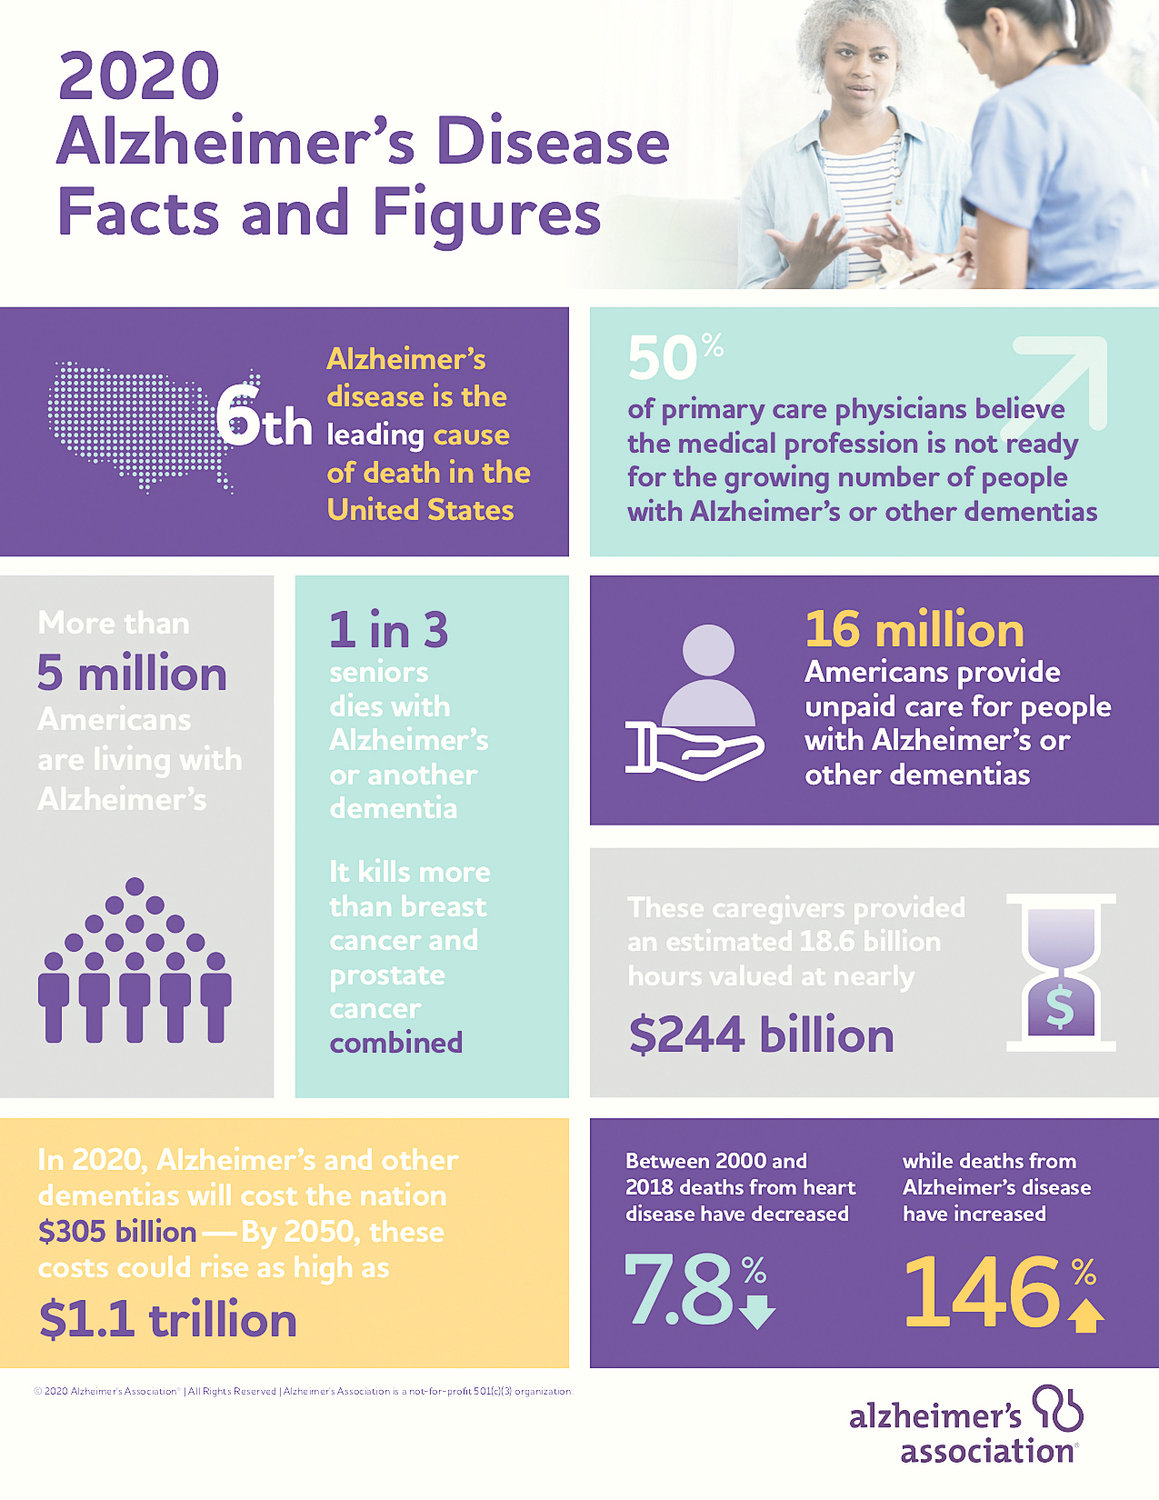 This graphic from the Alzheimer's Association details facts and figures about dementia.